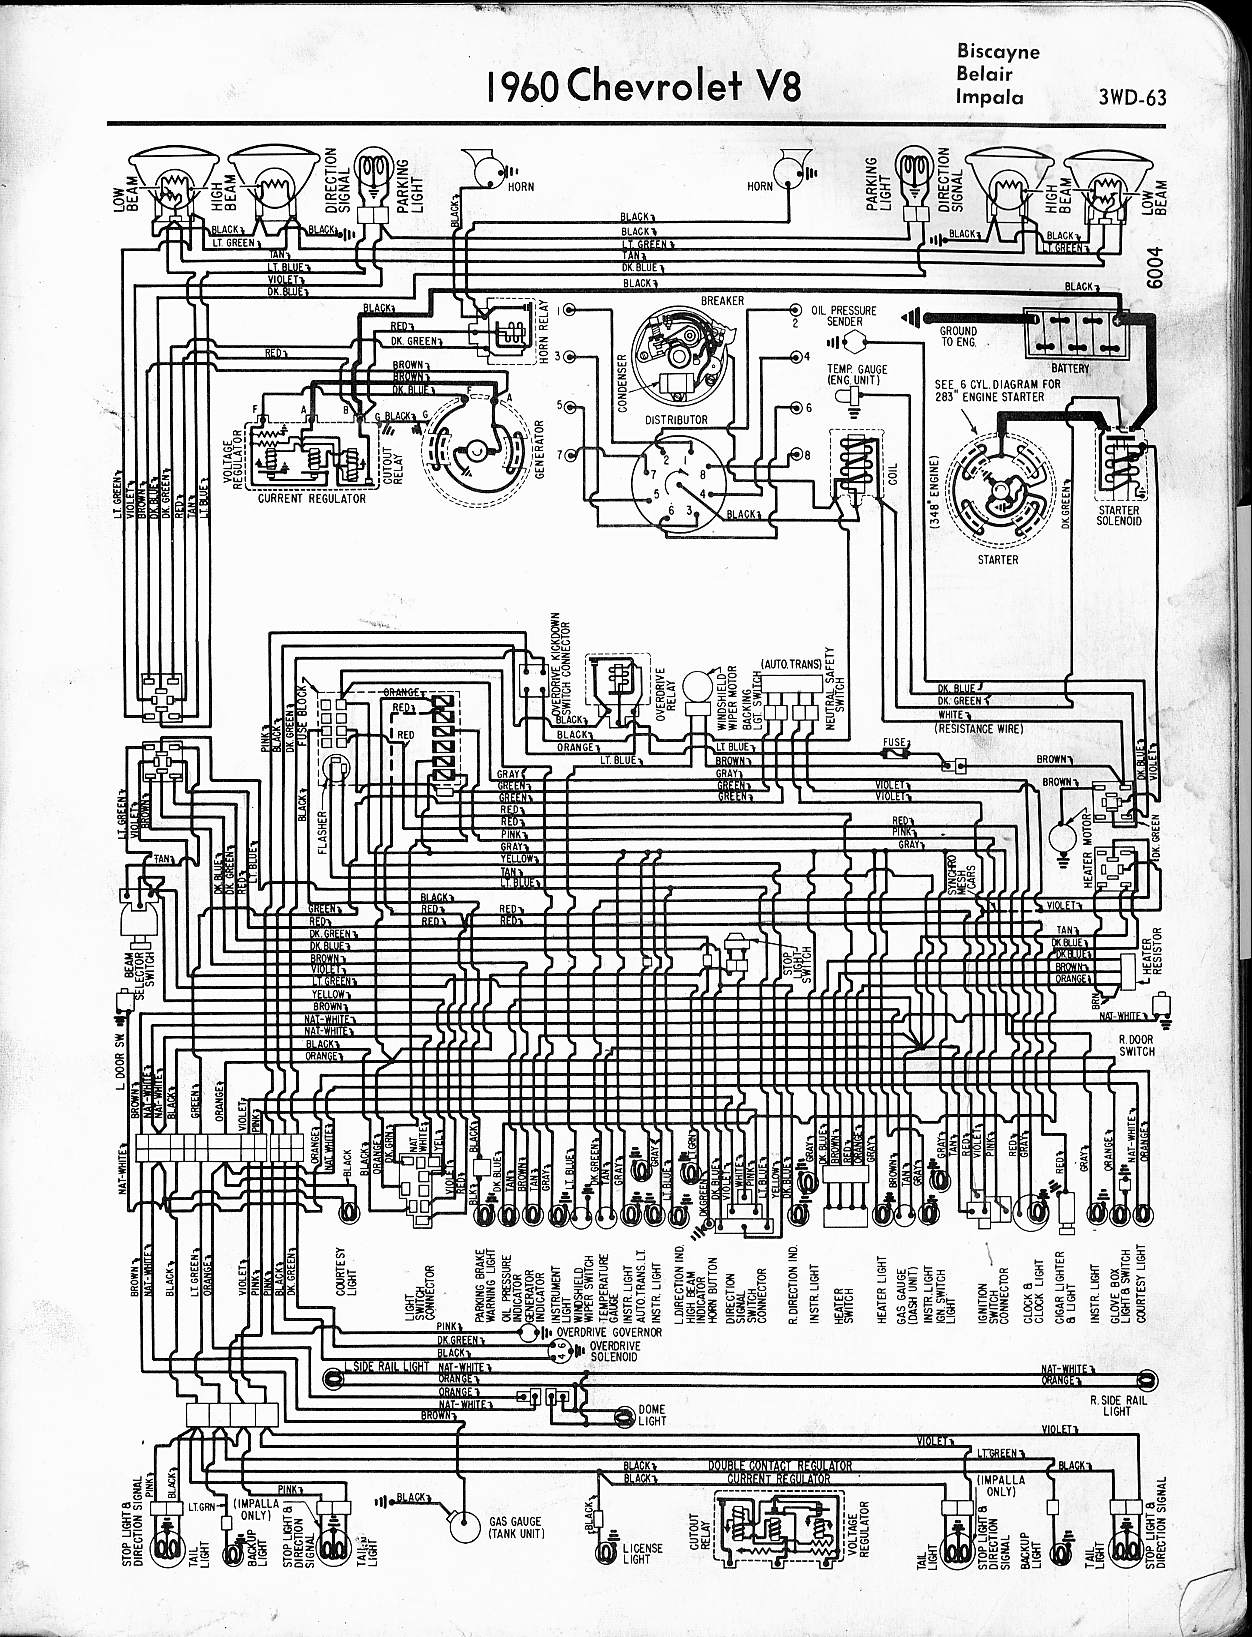 MWireChev60_3WD 063 1981 el camino wiring diagram 71 el camino wiring diagram \u2022 wiring chevrolet 1966 impala wiring diagram at crackthecode.co